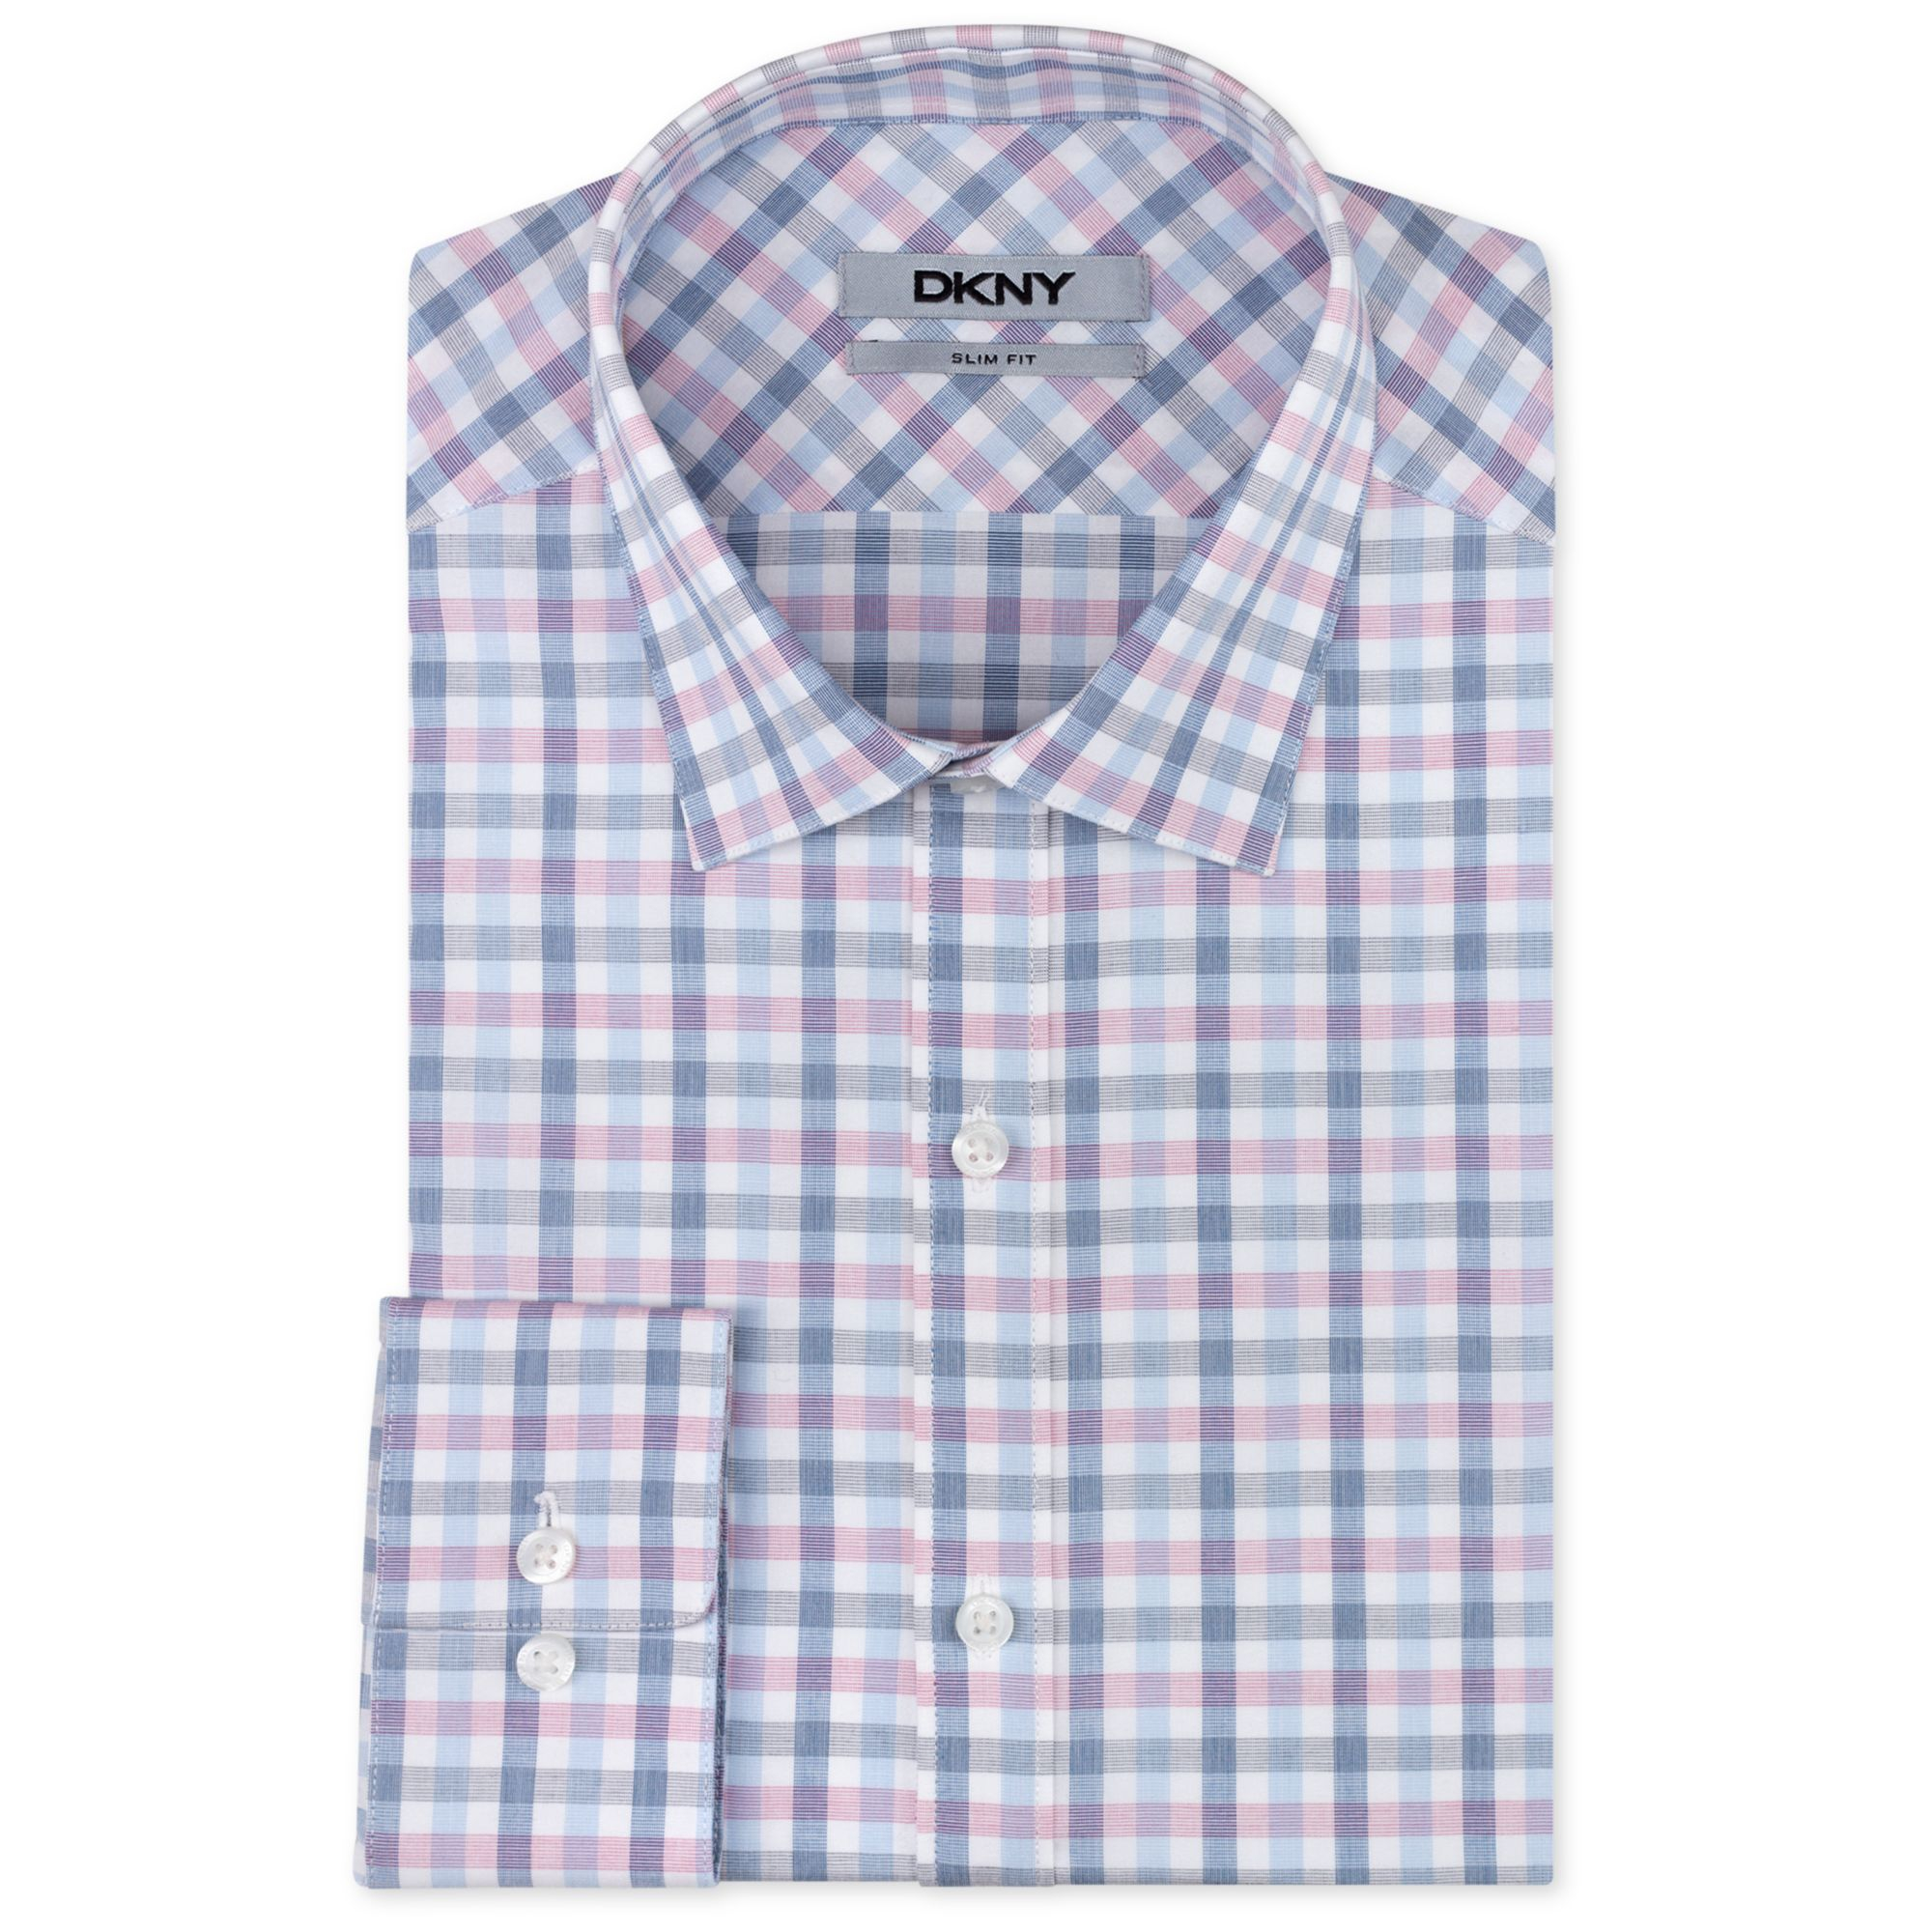 Dkny slim fit bold pink and blue check dress shirt in pink for Blue check dress shirt